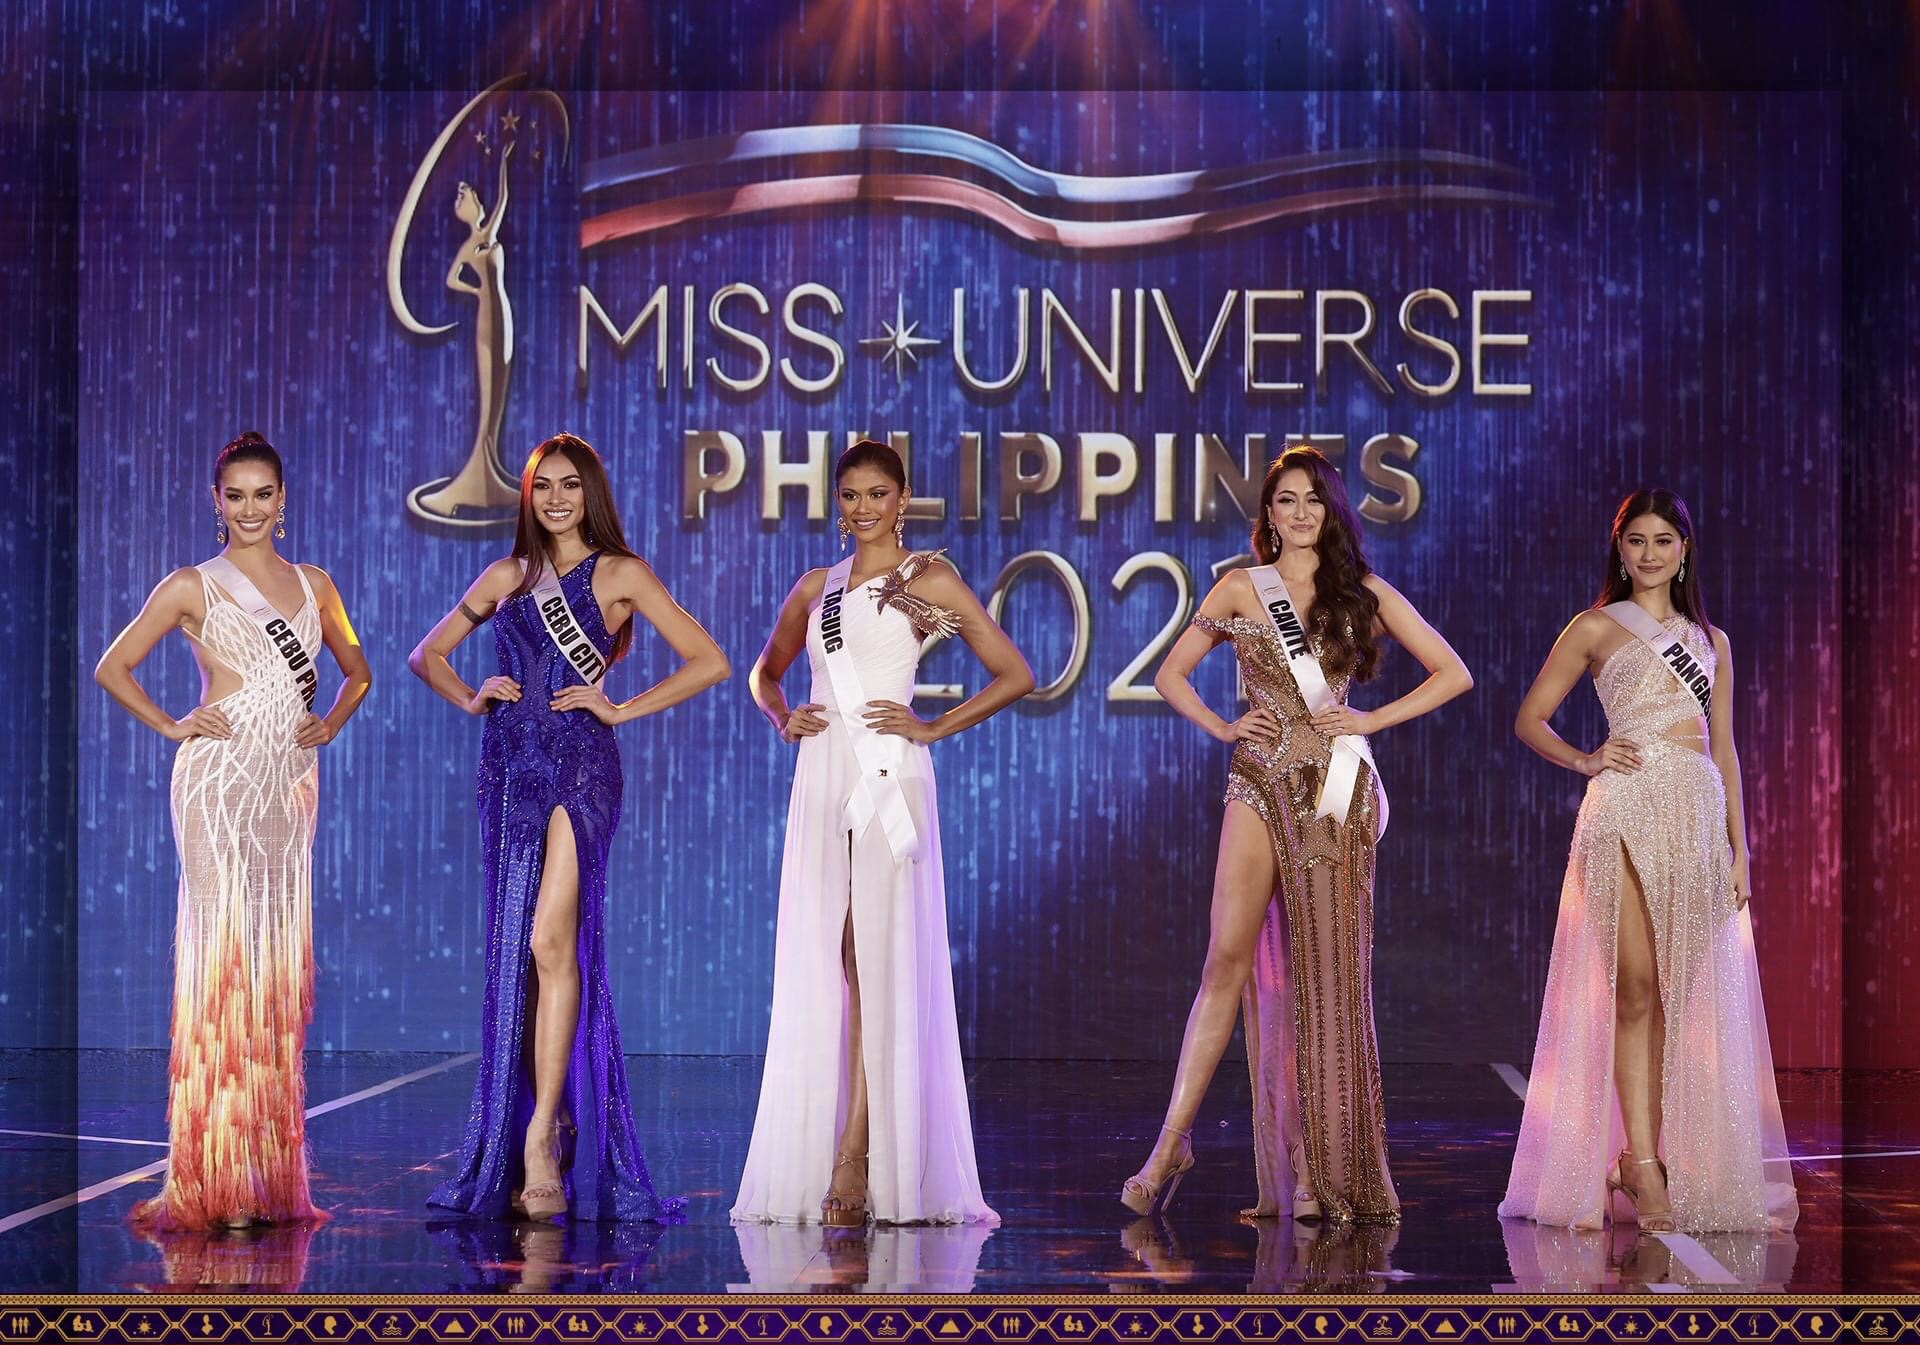 Miss Universe Philippines 2021 Coronation Night, powered by PLDT Home